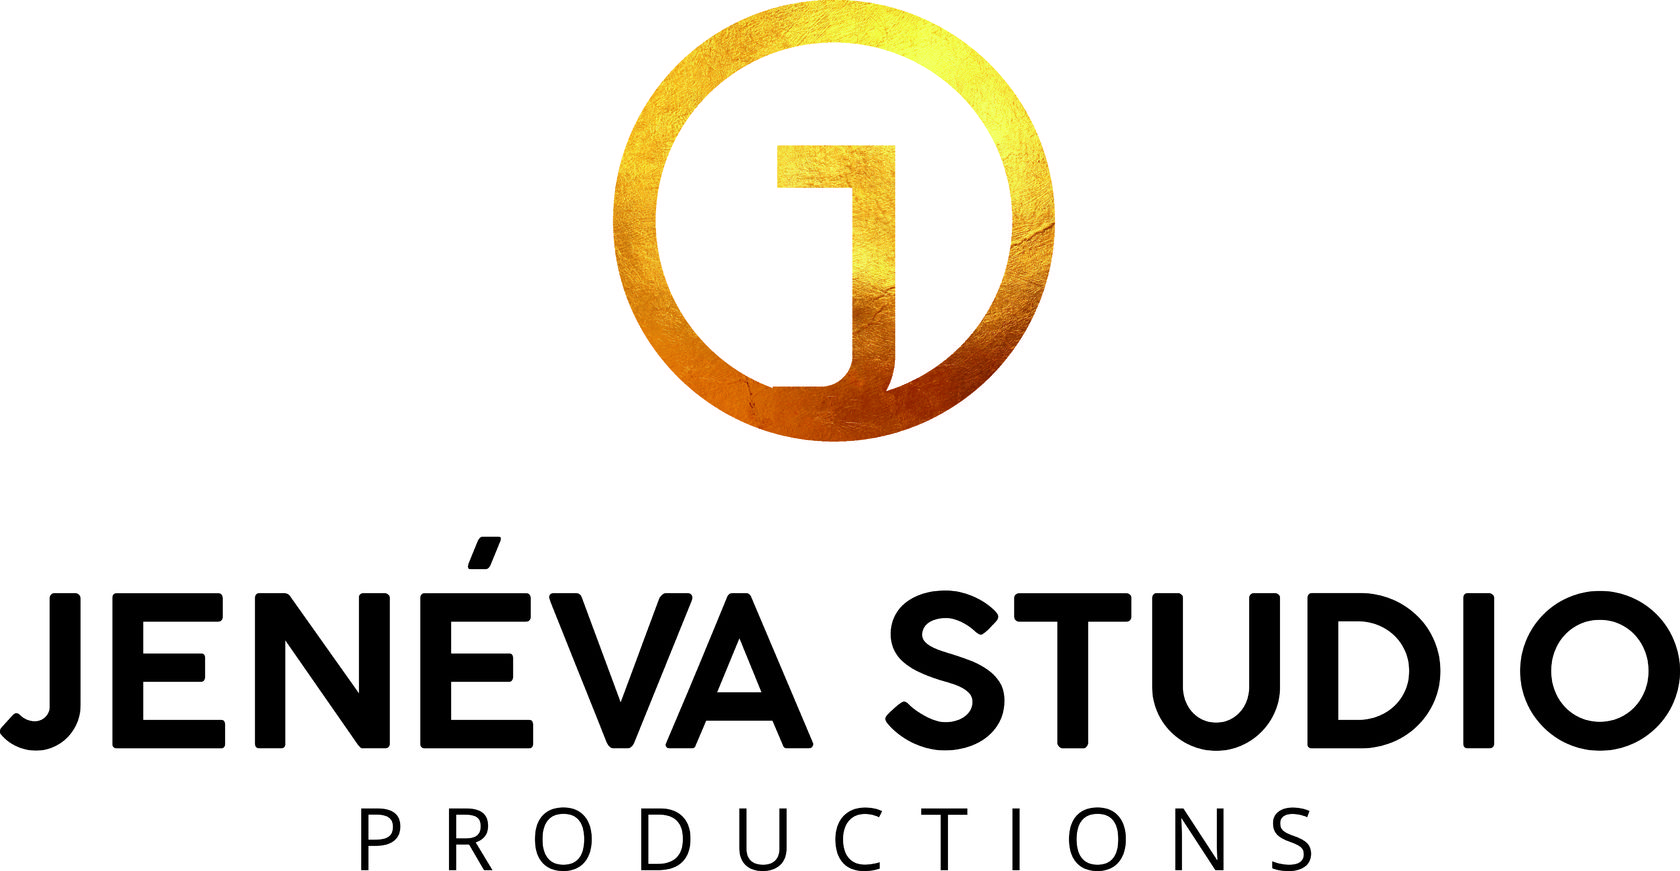 JENEVA STUDIO PRODUCTIONS